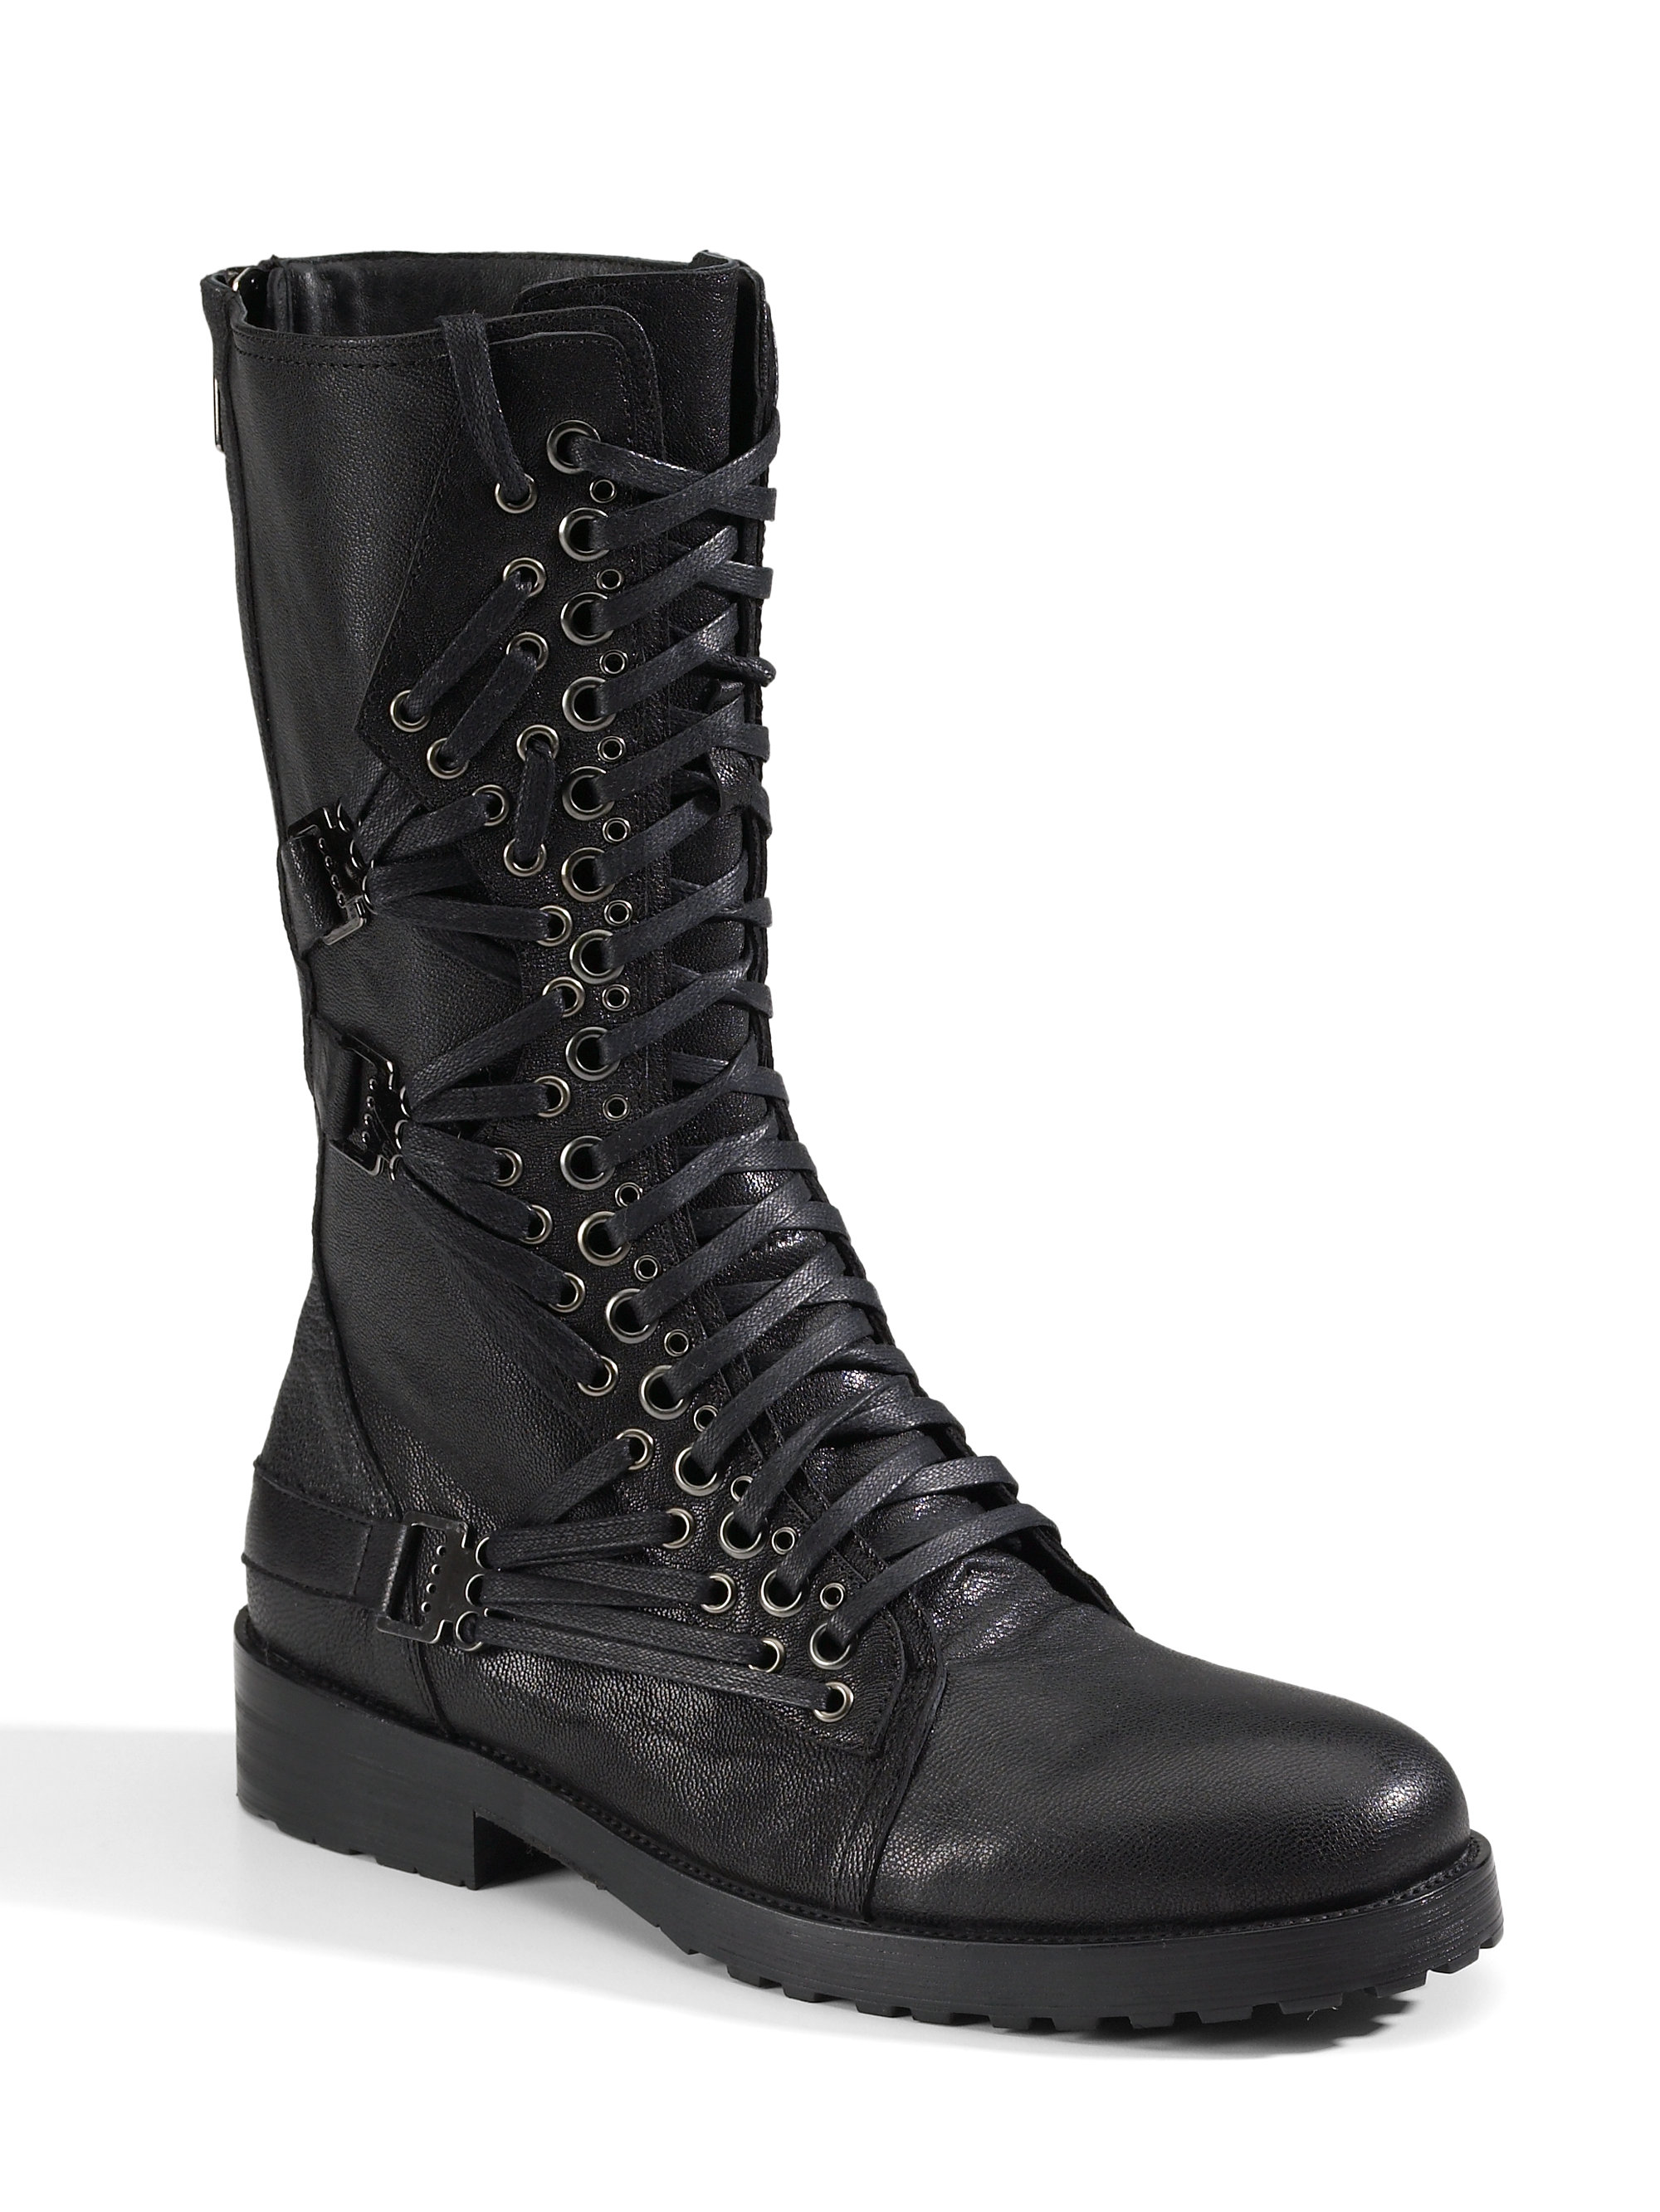 Rock & republic Nilo Tall Laceup Boots in Black for Men | Lyst